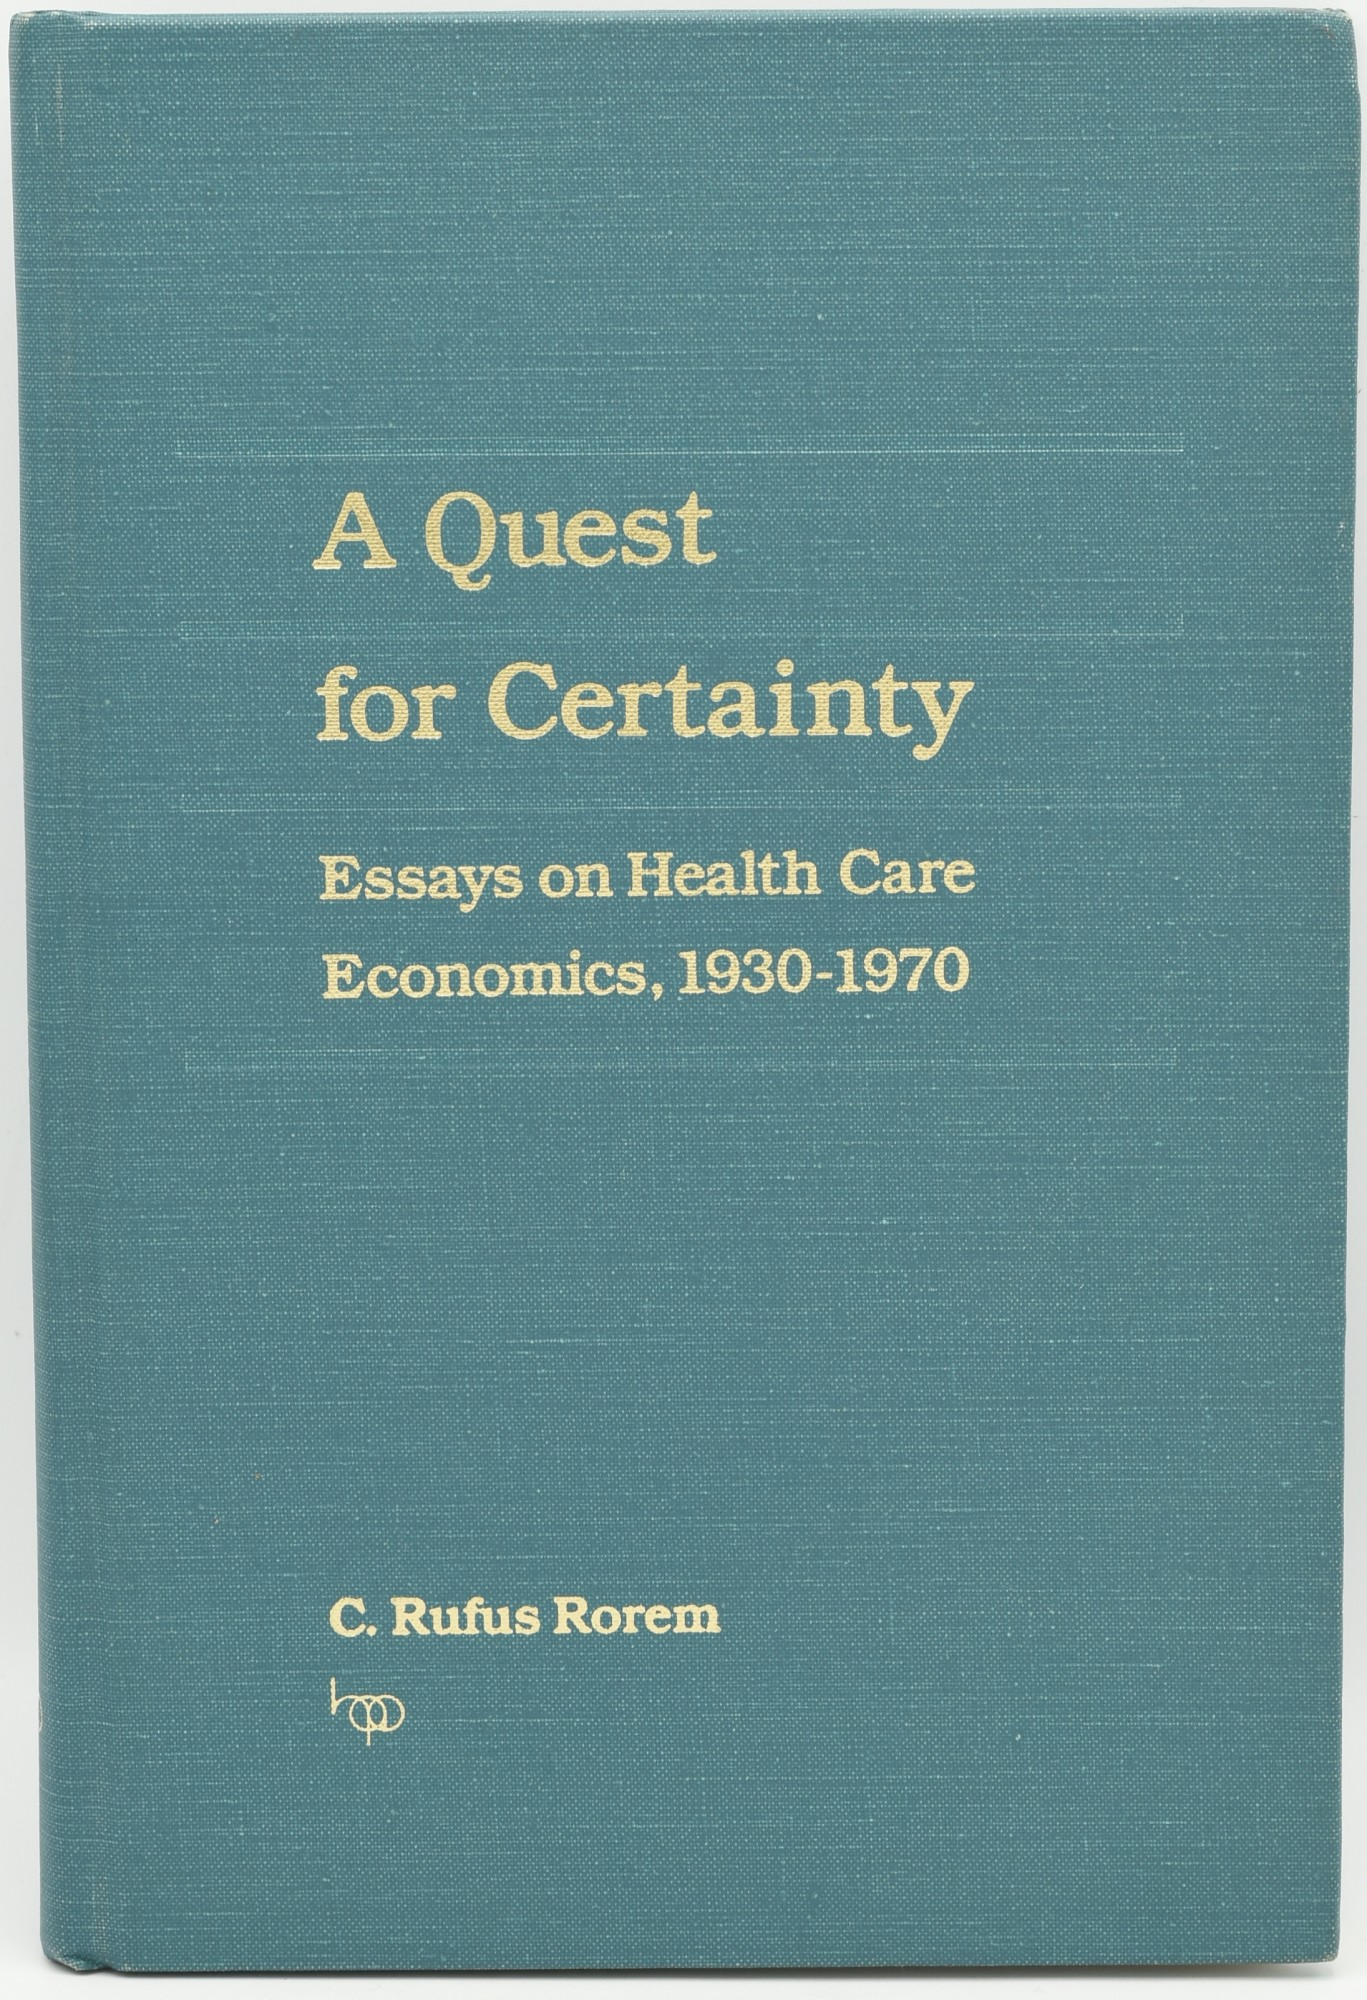 Essay Health  Essay For Students Of High School also Research Essay Proposal A Quest For Certainty Essays On Health Care Economics  By C  Rufus Rorem On Black Swan Books Position Paper Essay